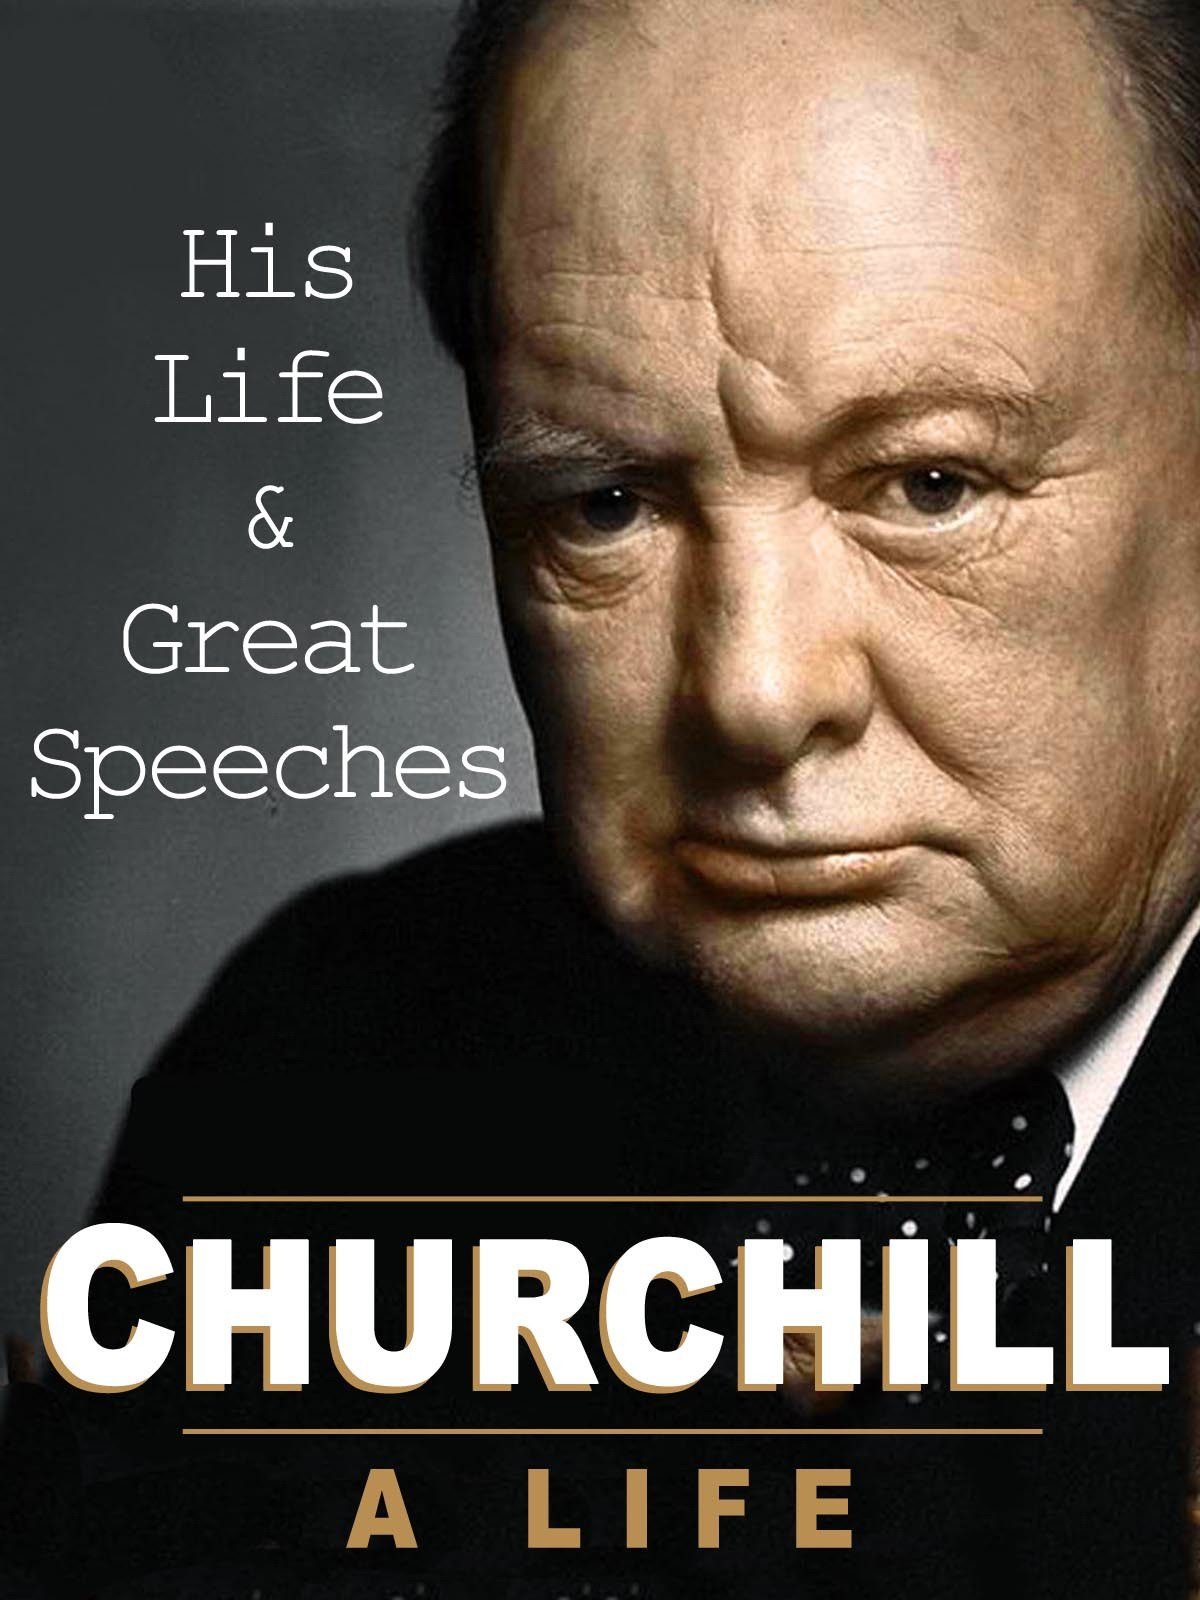 Churchill A Life: His Life & Great Speeches